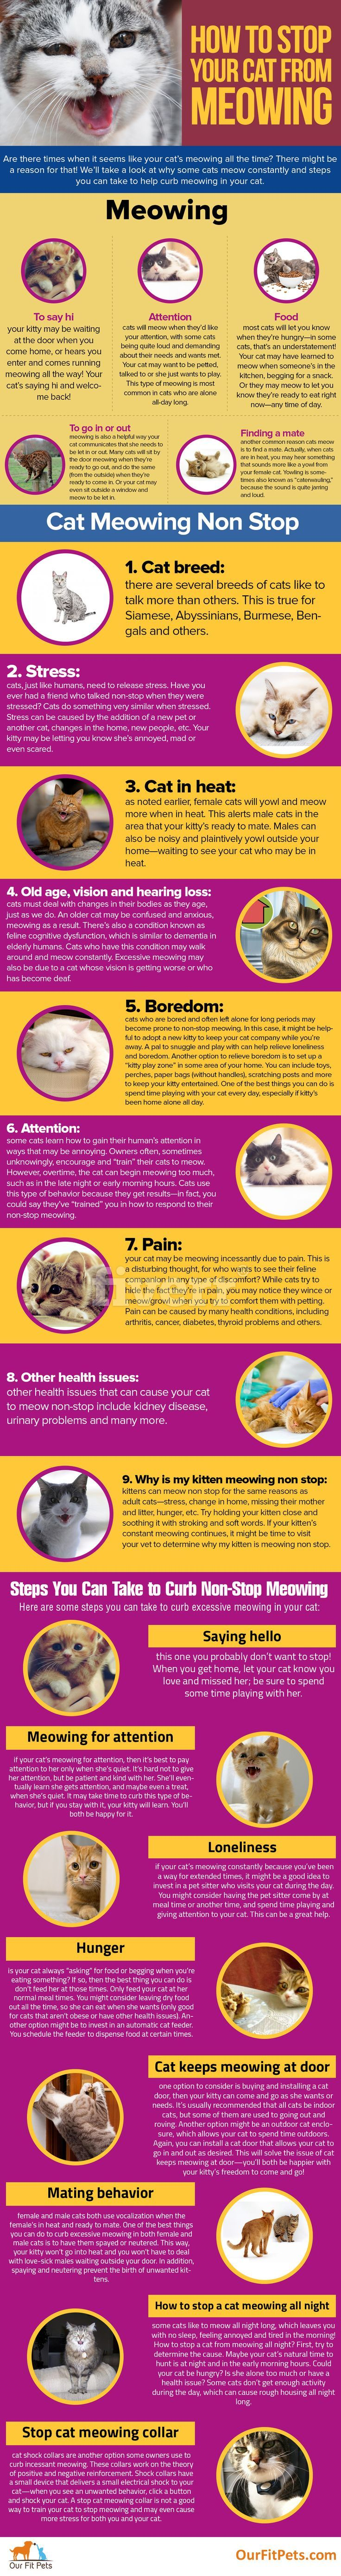 How To Stop Your Cat From Meowing Our Fit Pets Cat Advice Meows Cat Breeds